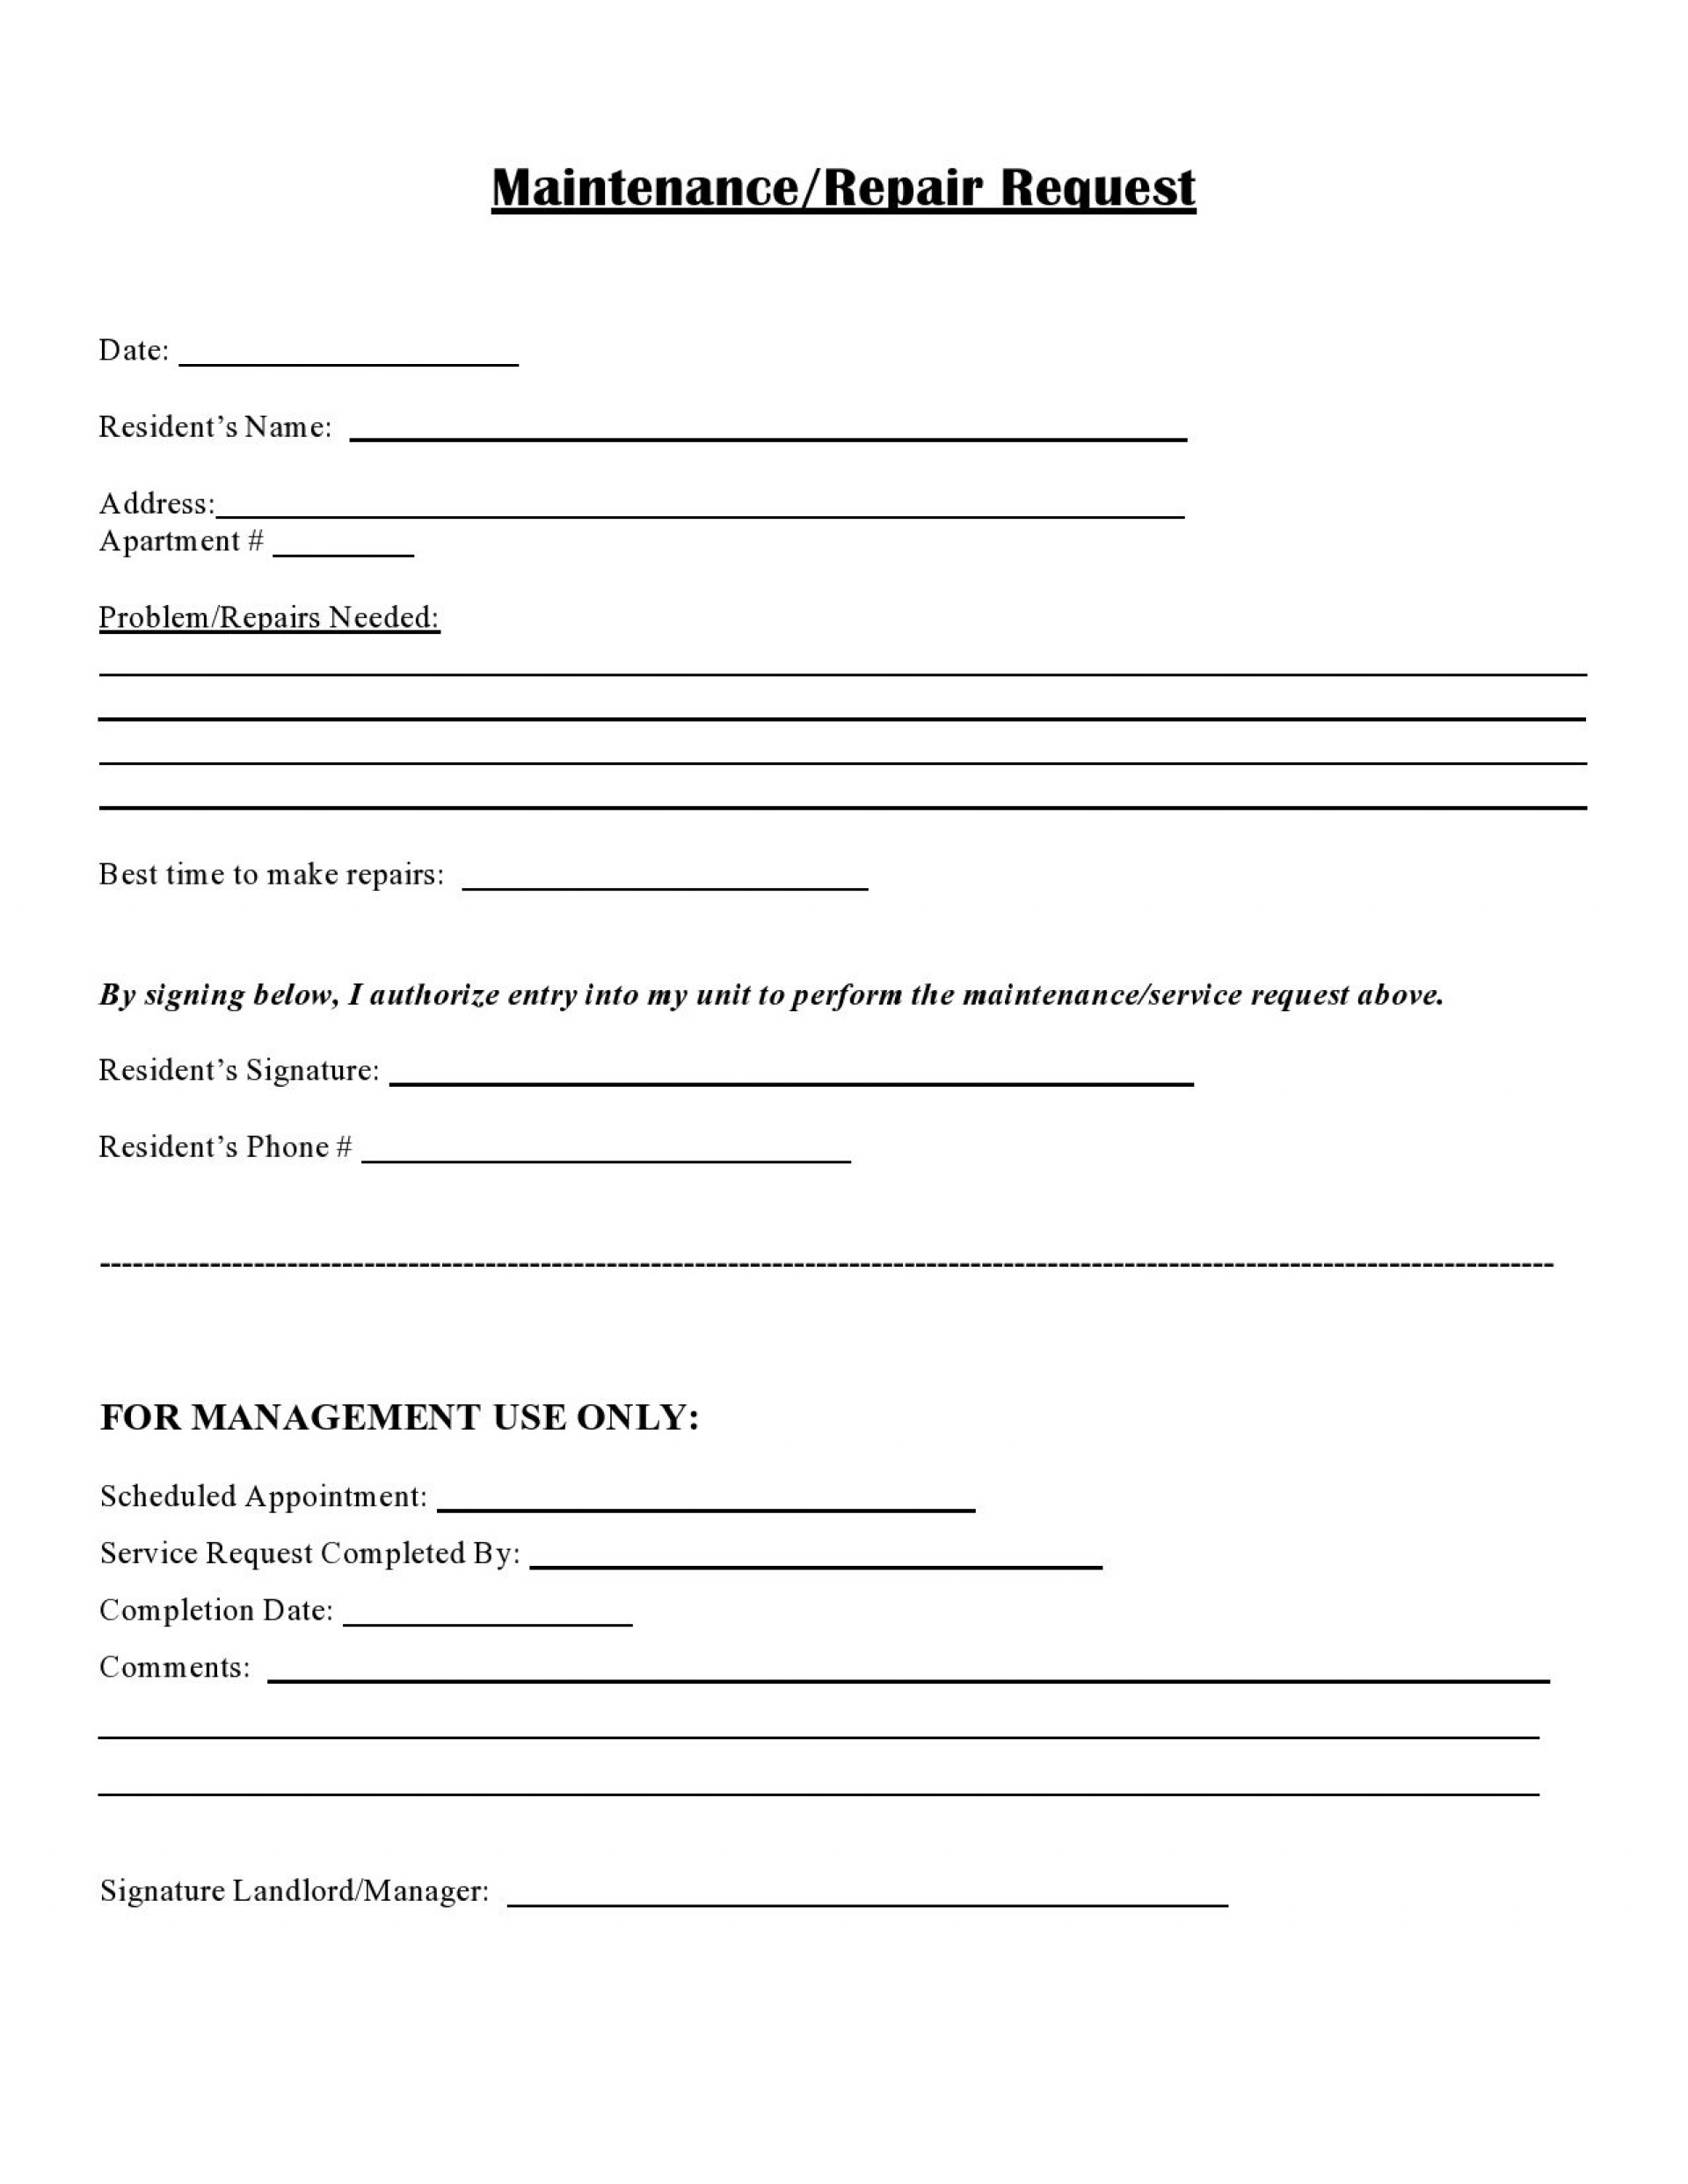 007 Outstanding Maintenance Work Order Template Sample  Form Free1920